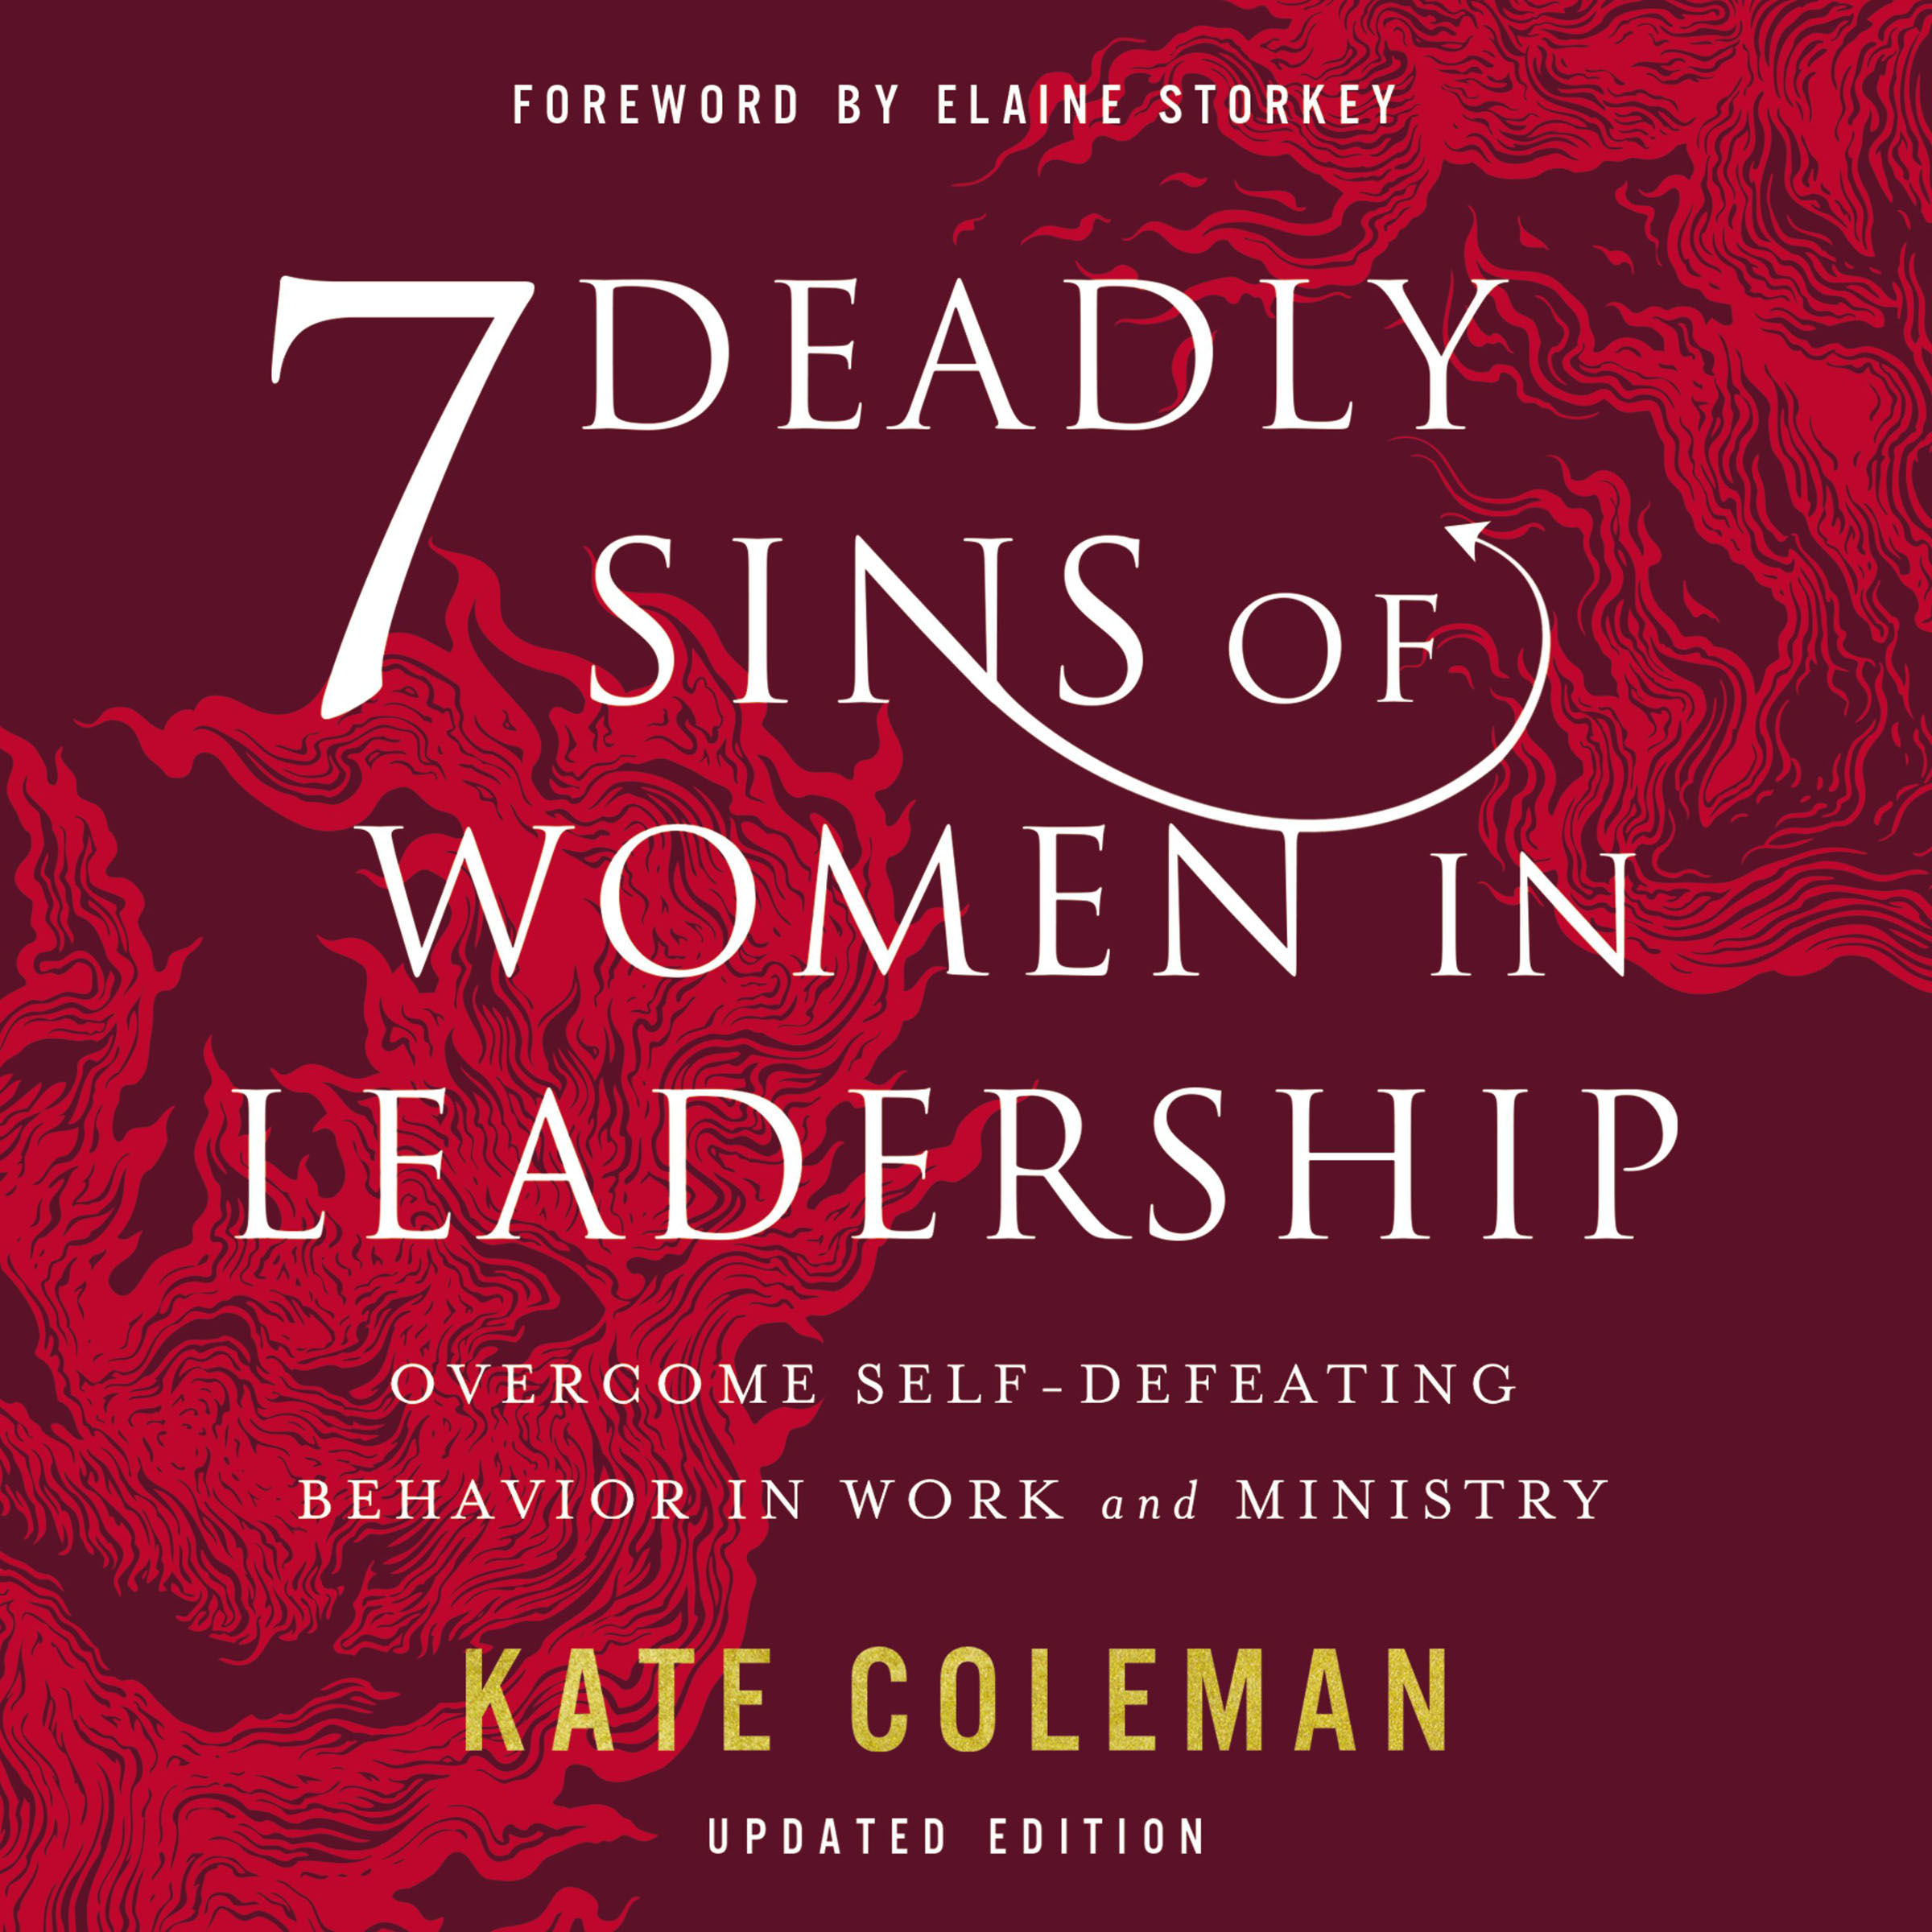 7 Deadly Sins of Women in Leadership: Overcome Self-Defeating Behavior in Work and Ministry (audio)